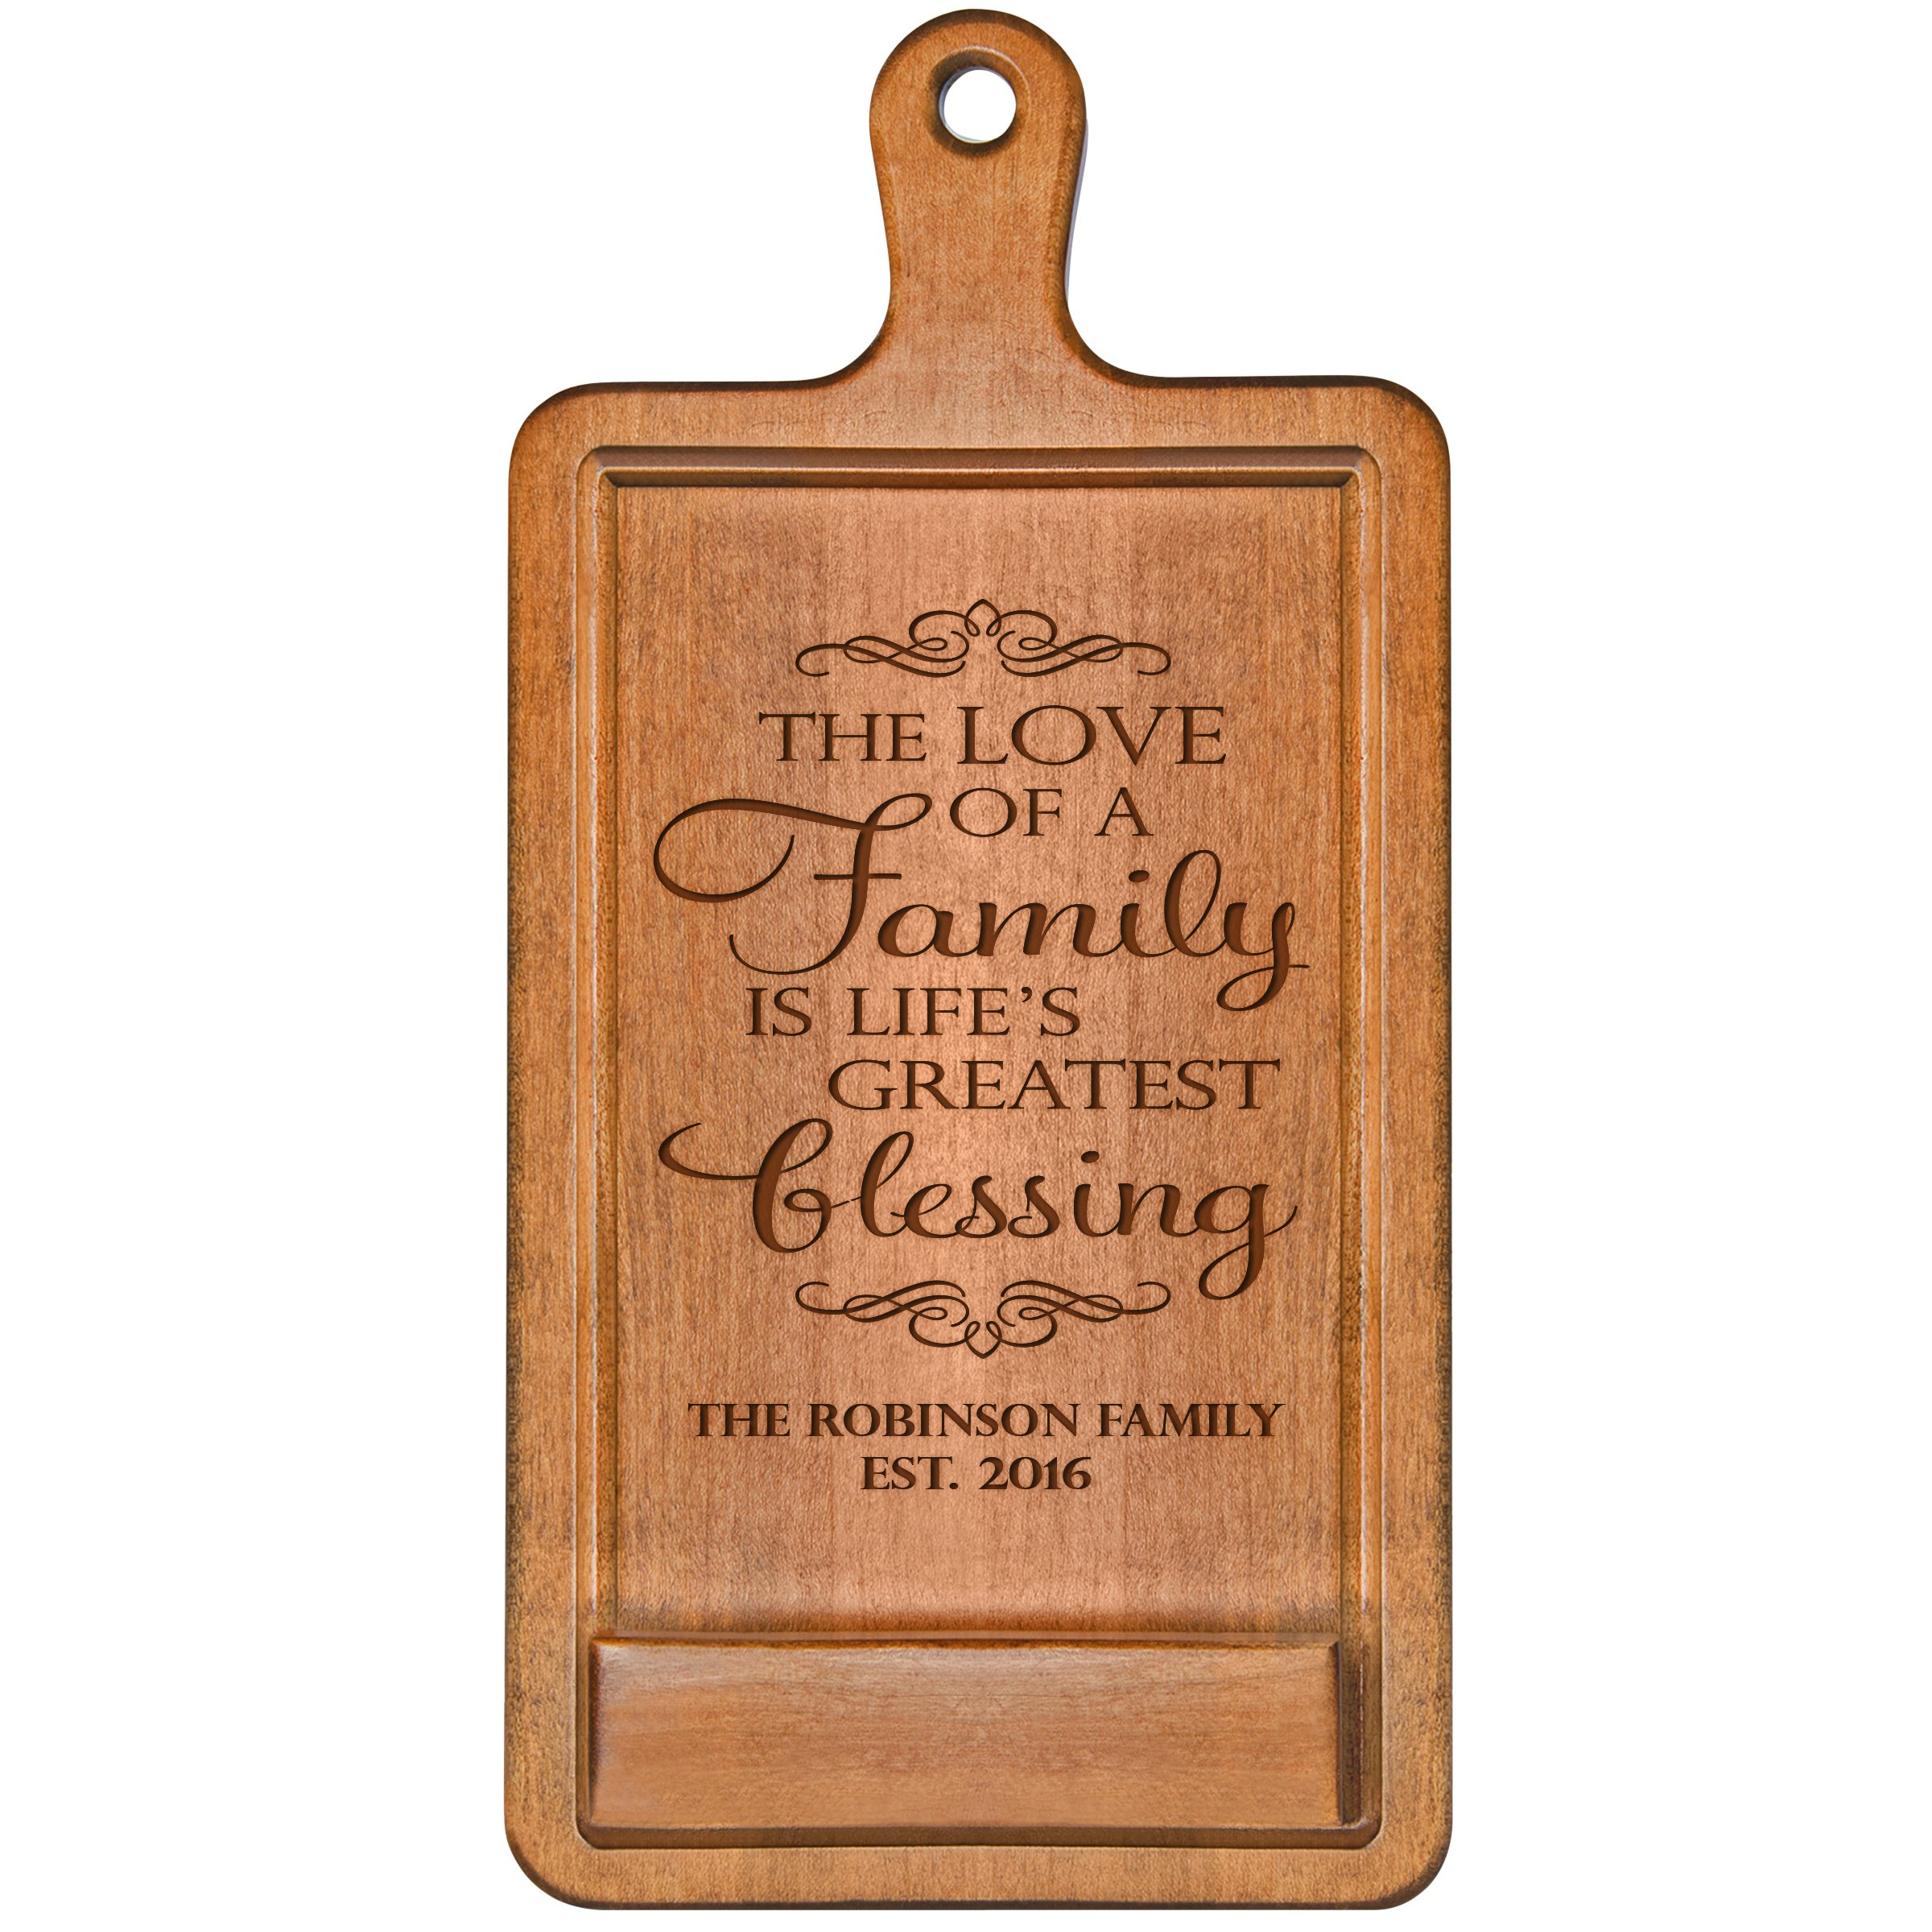 Personalized Cherry iPad Cook book Recipe holder with stand under counter for Kitchen with Family Name and Year Established date The love of a family Wedding Gift ideas for Him Her Couple by LifeSong Milestones